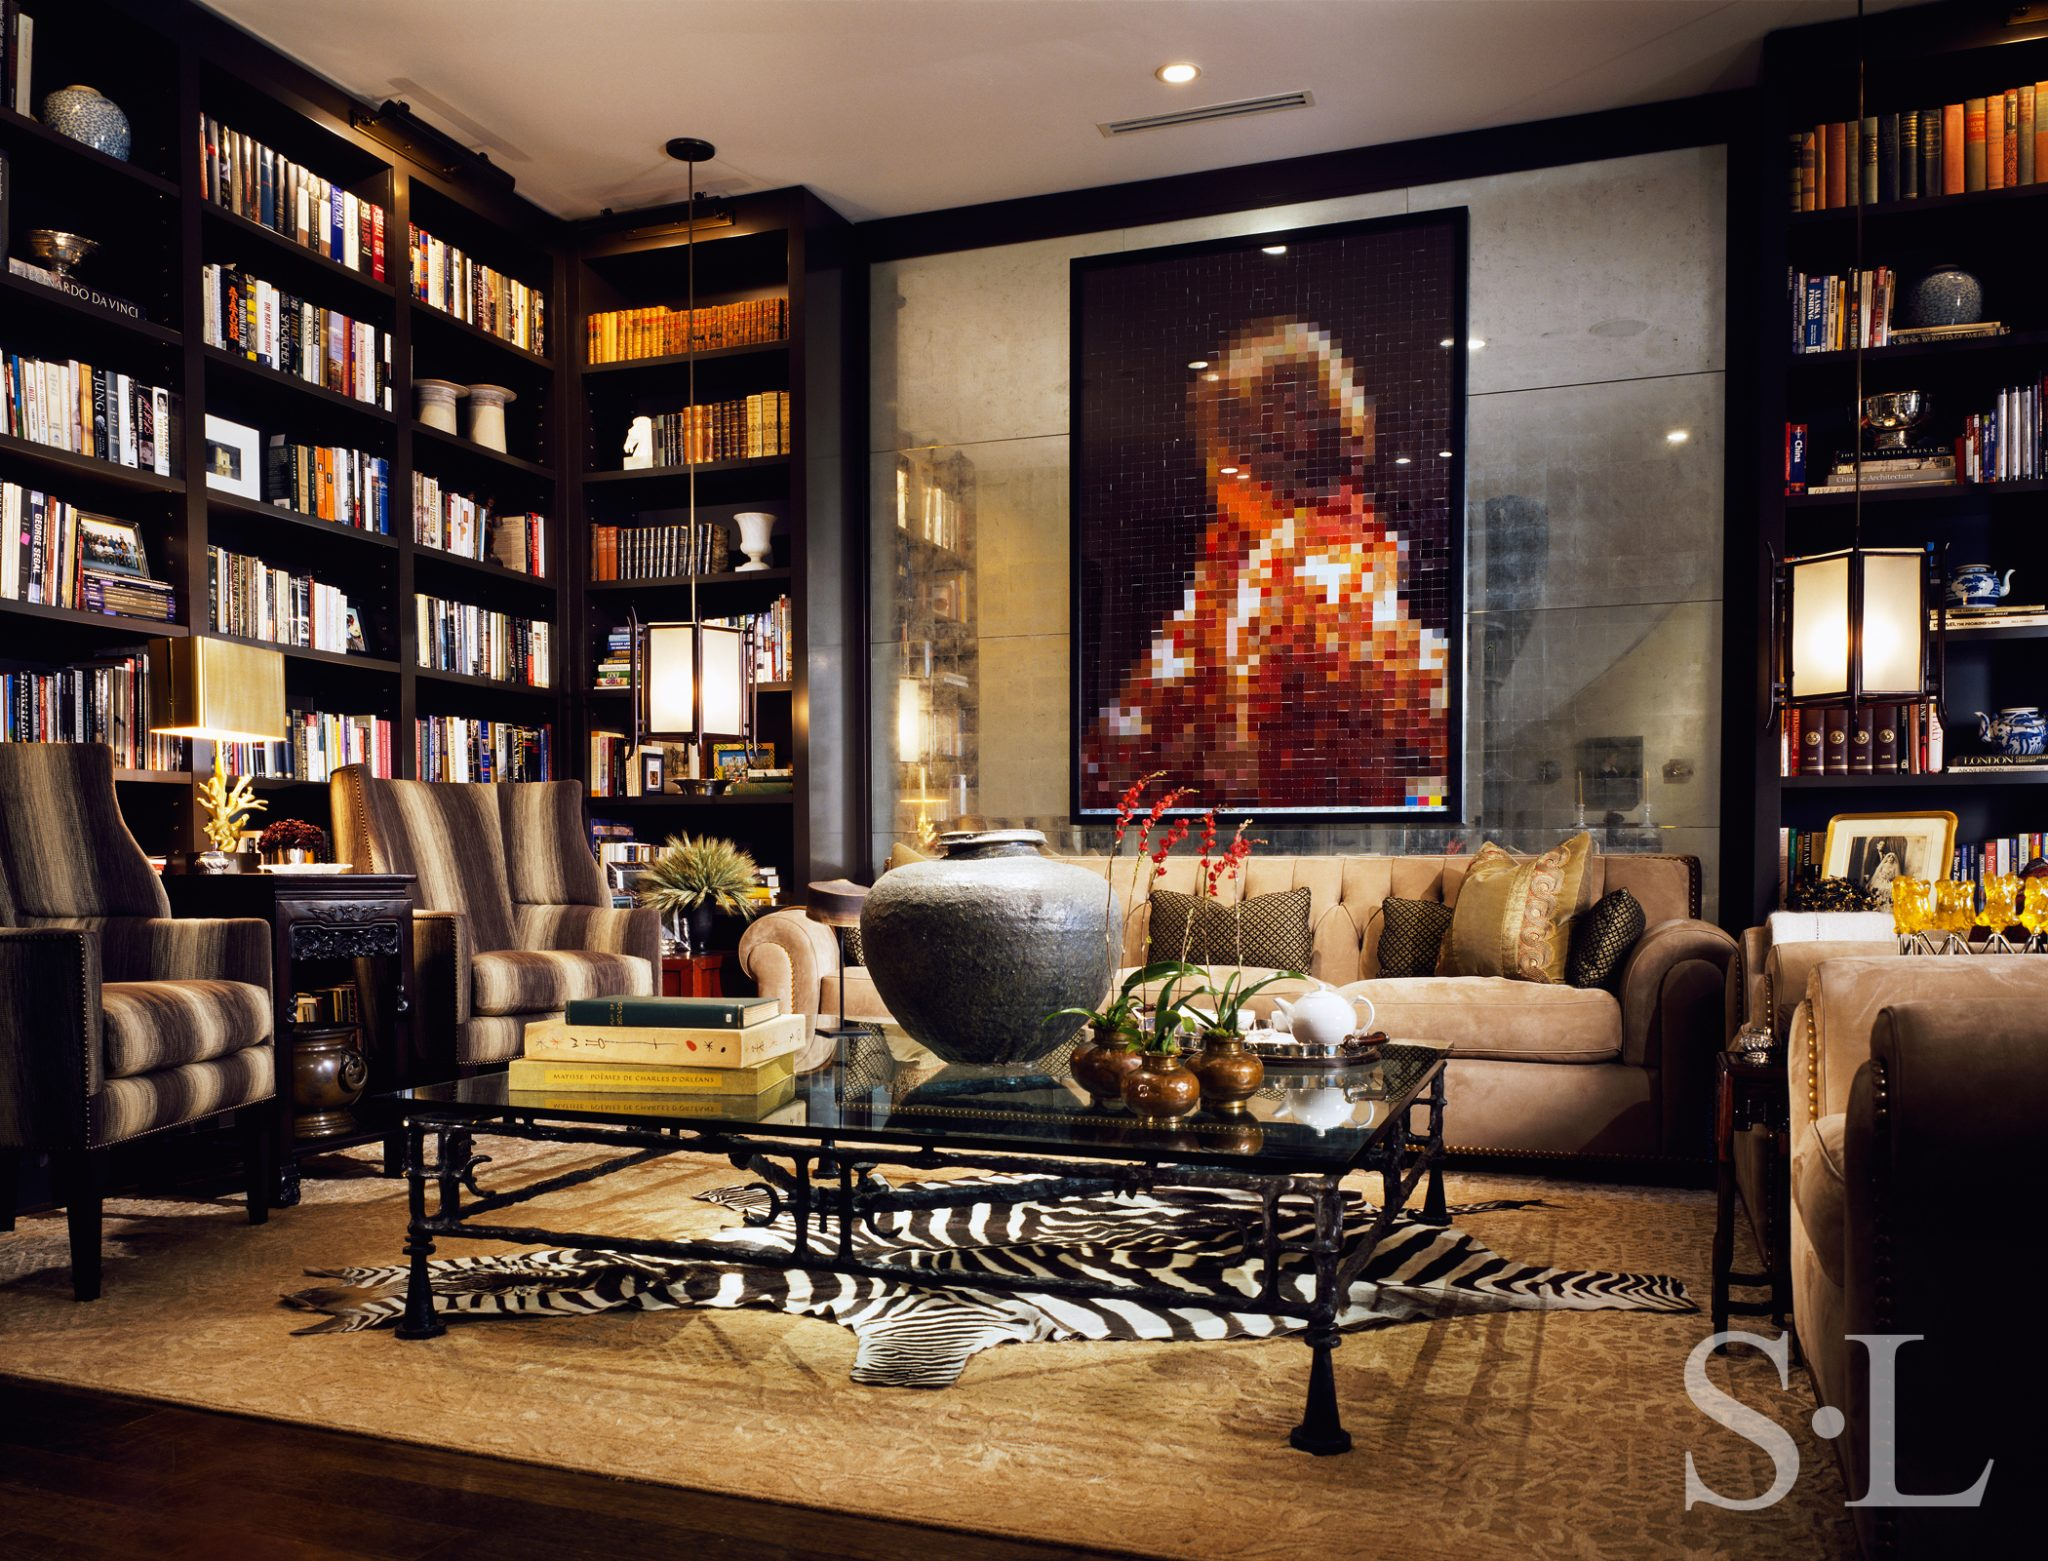 Interior design by Suzanne Lovell Inc.